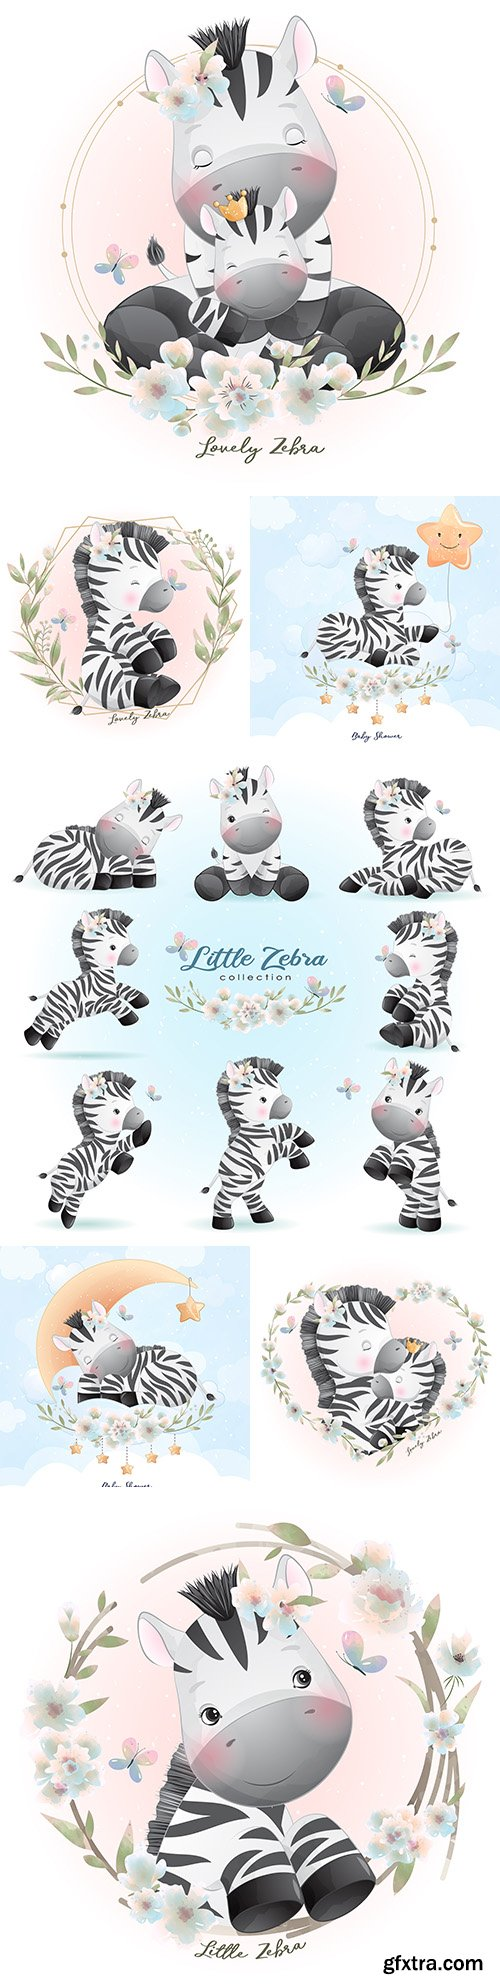 Pretty zebra painted with flowers illustrations